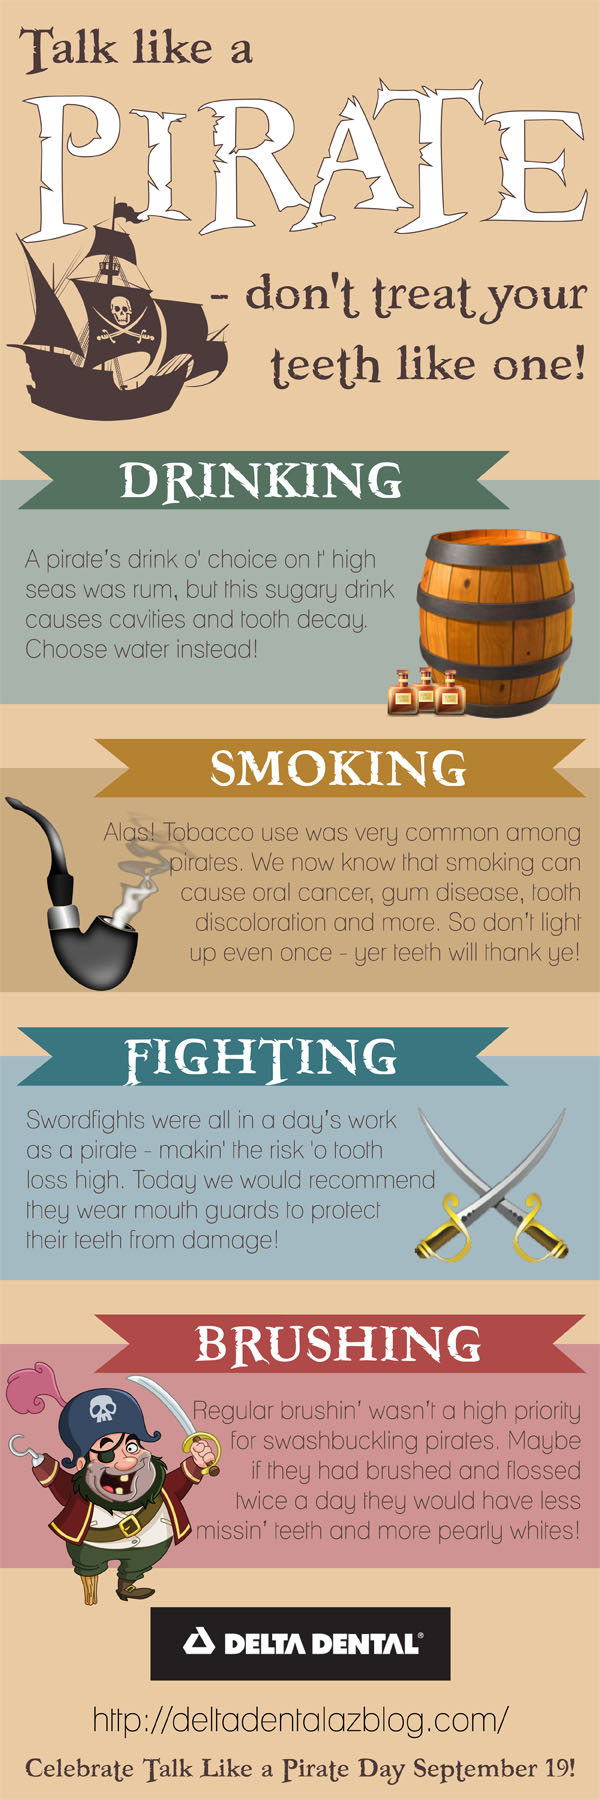 International Talk Like a Pirate Day #infographic